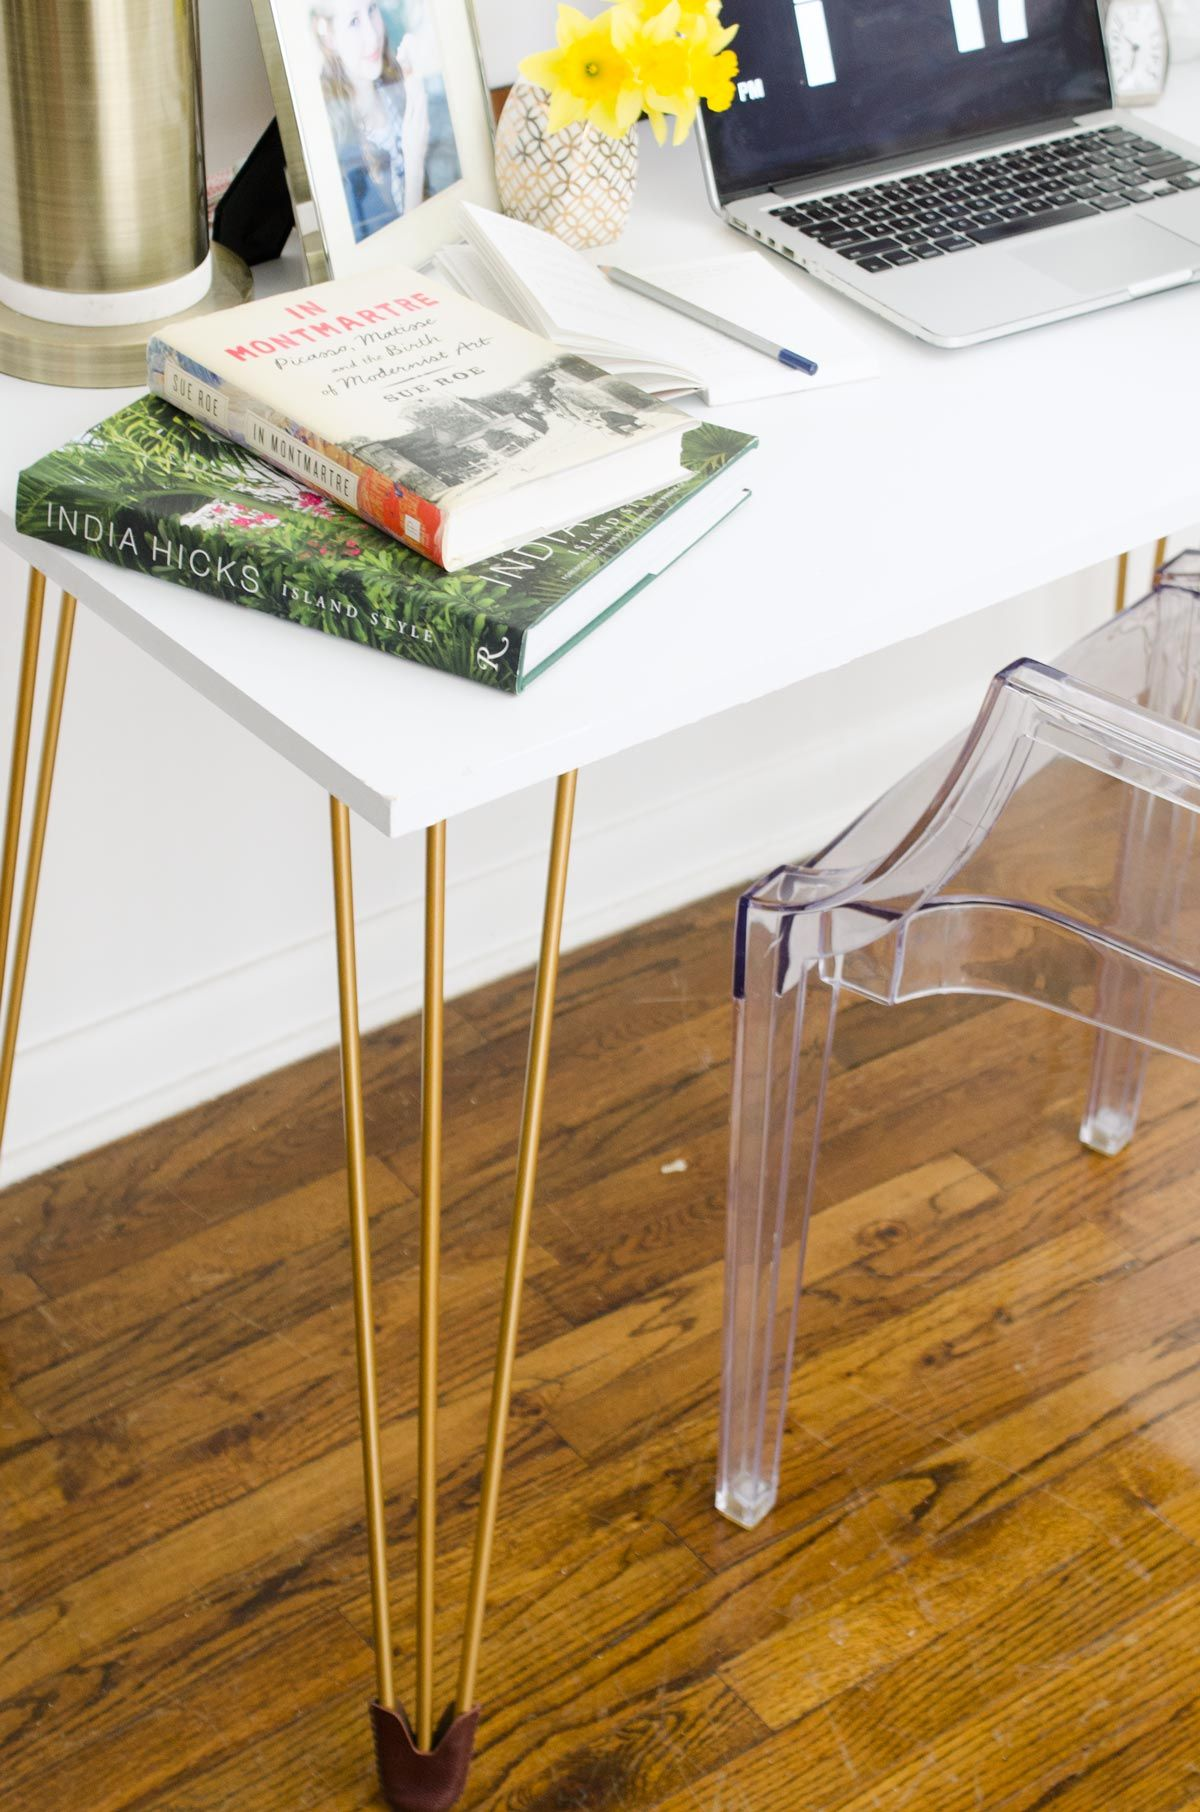 Diy Desk With Gold Hairpin Legs Thou Swell Diy Table Legs Diy Desk Diy Desk Accessories